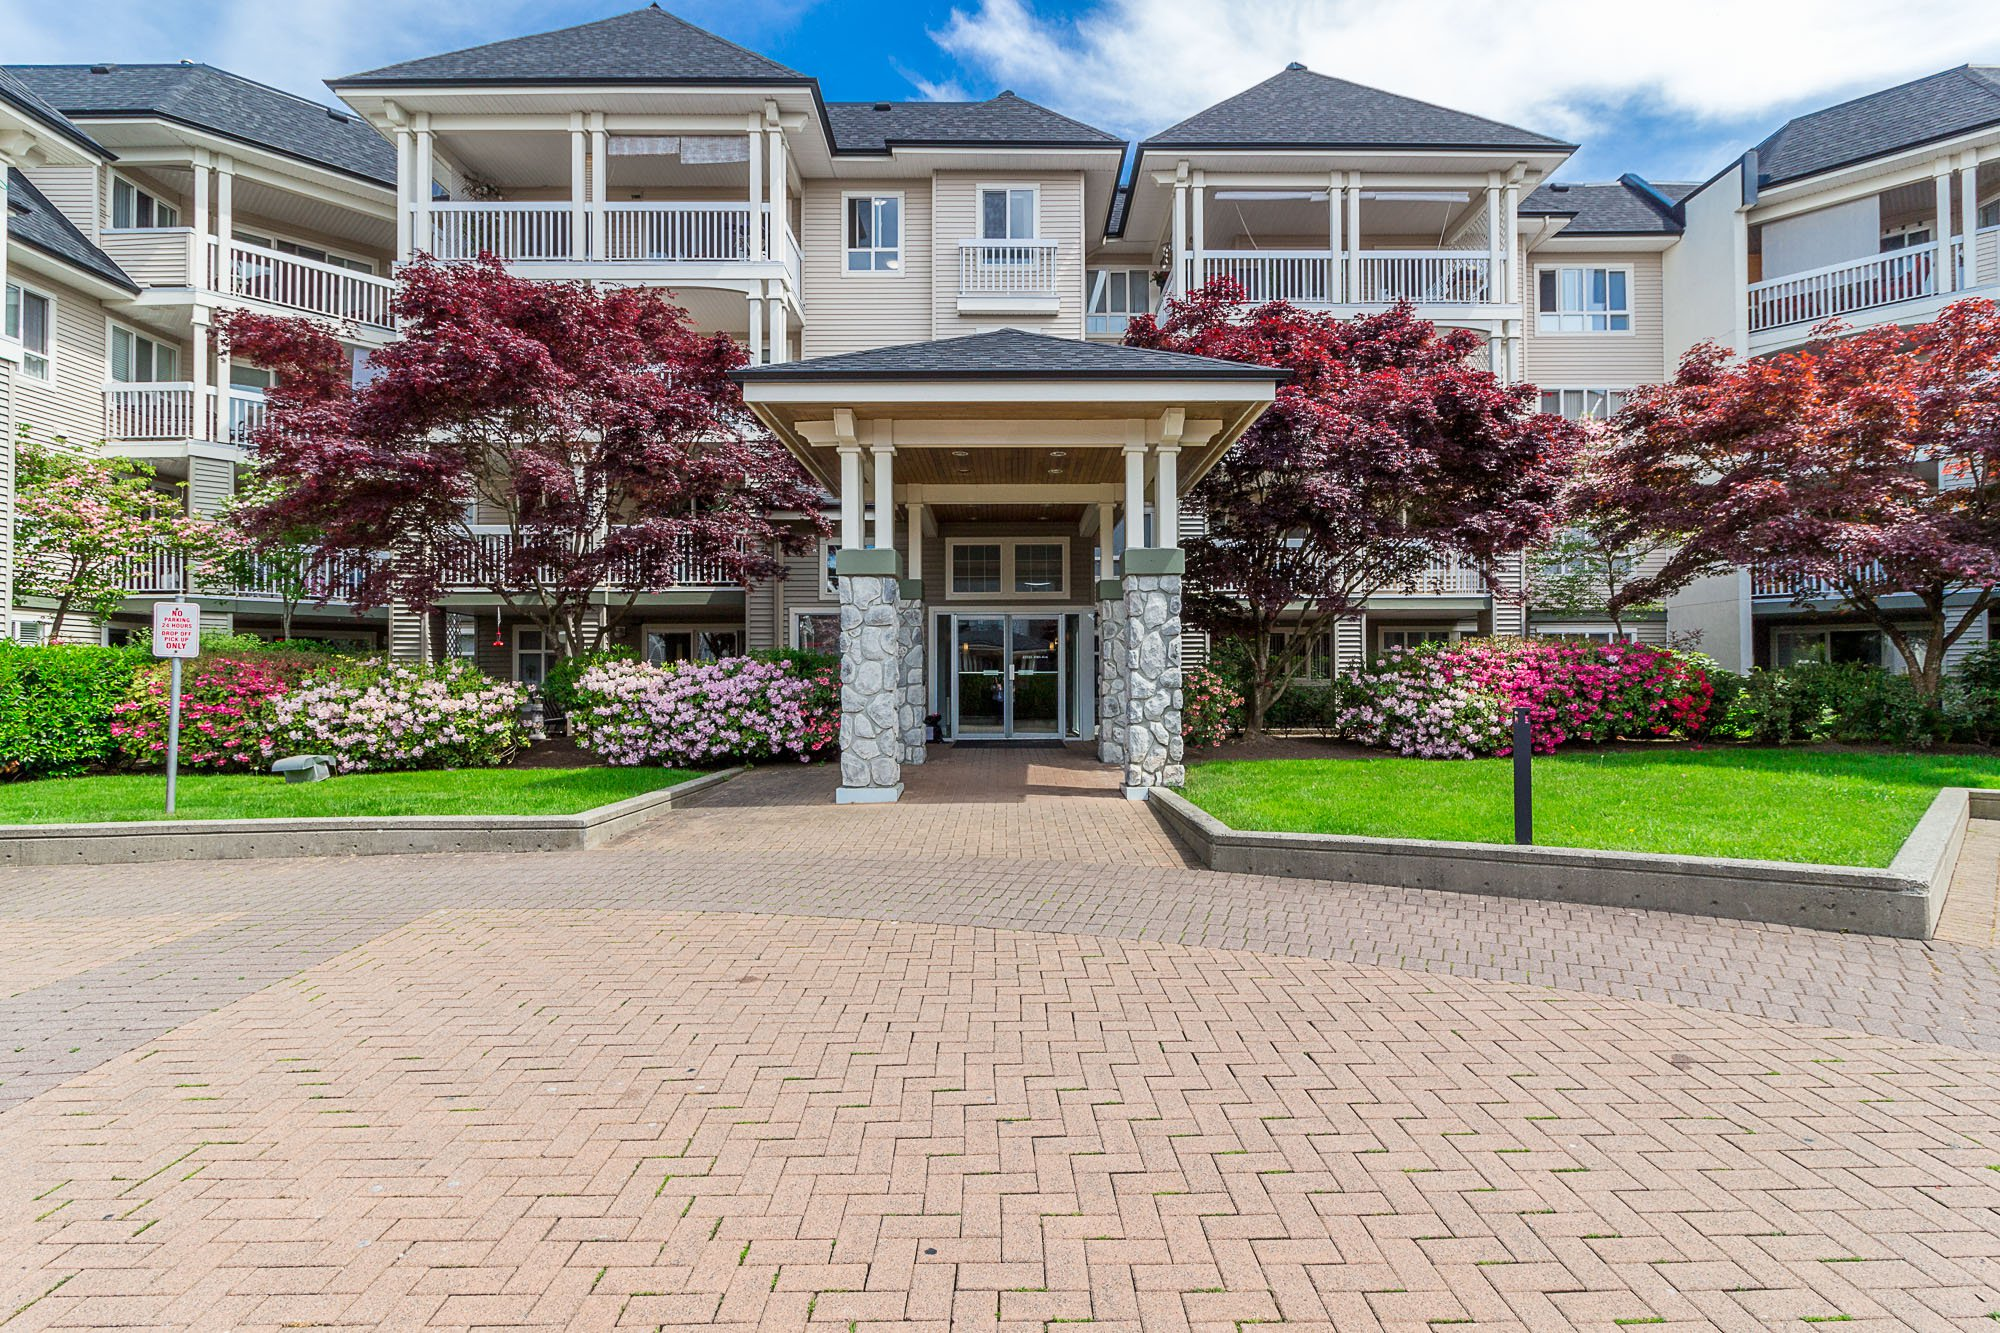 """Photo 28: Photos: 412 22022 49 Avenue in Langley: Murrayville Condo for sale in """"Murray Green"""" : MLS®# R2266359"""